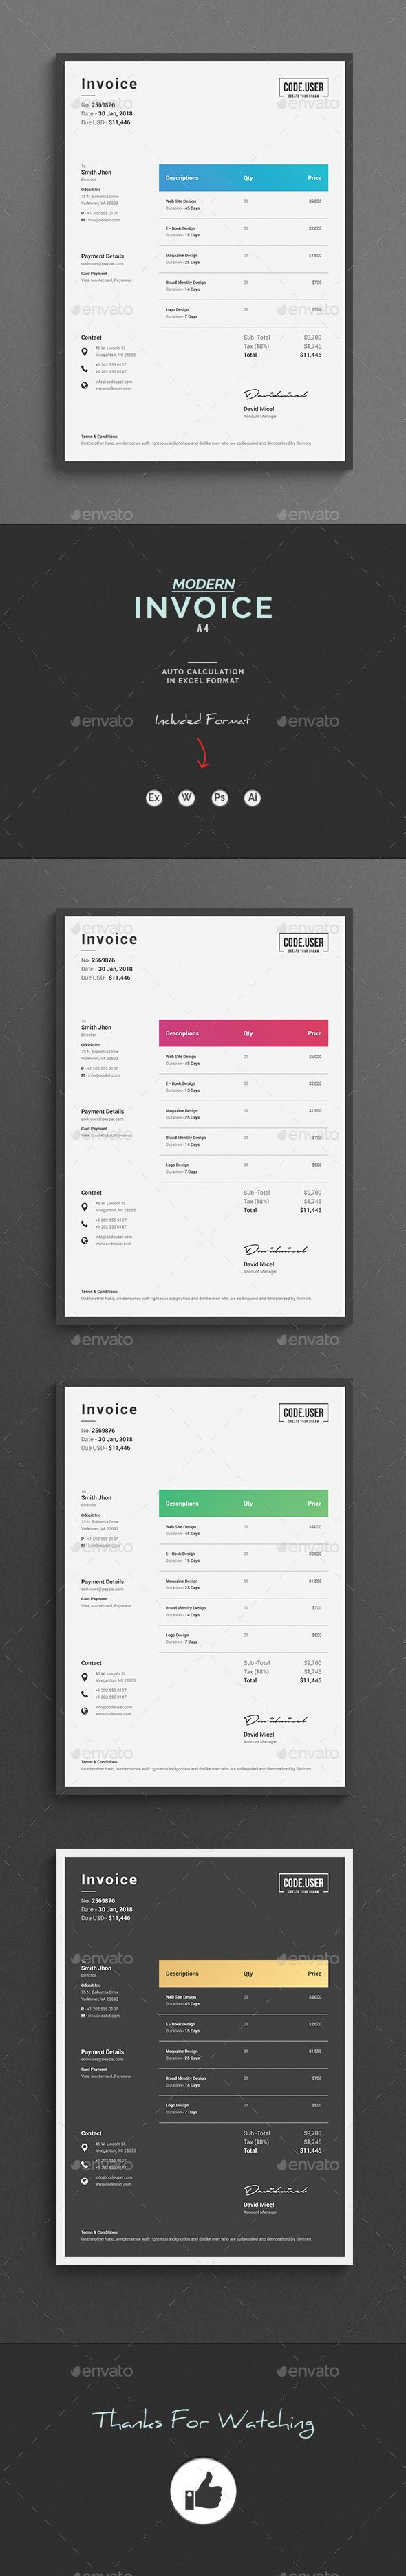 Invoice Invoice Excel Template. Use this Invoice for personal, corporate or company billing purpose. This Simple Invoice will help you to create your invoice very quick and easy. Elegant Invoice Design will convey your brand identity as well as Professional Invoice look.